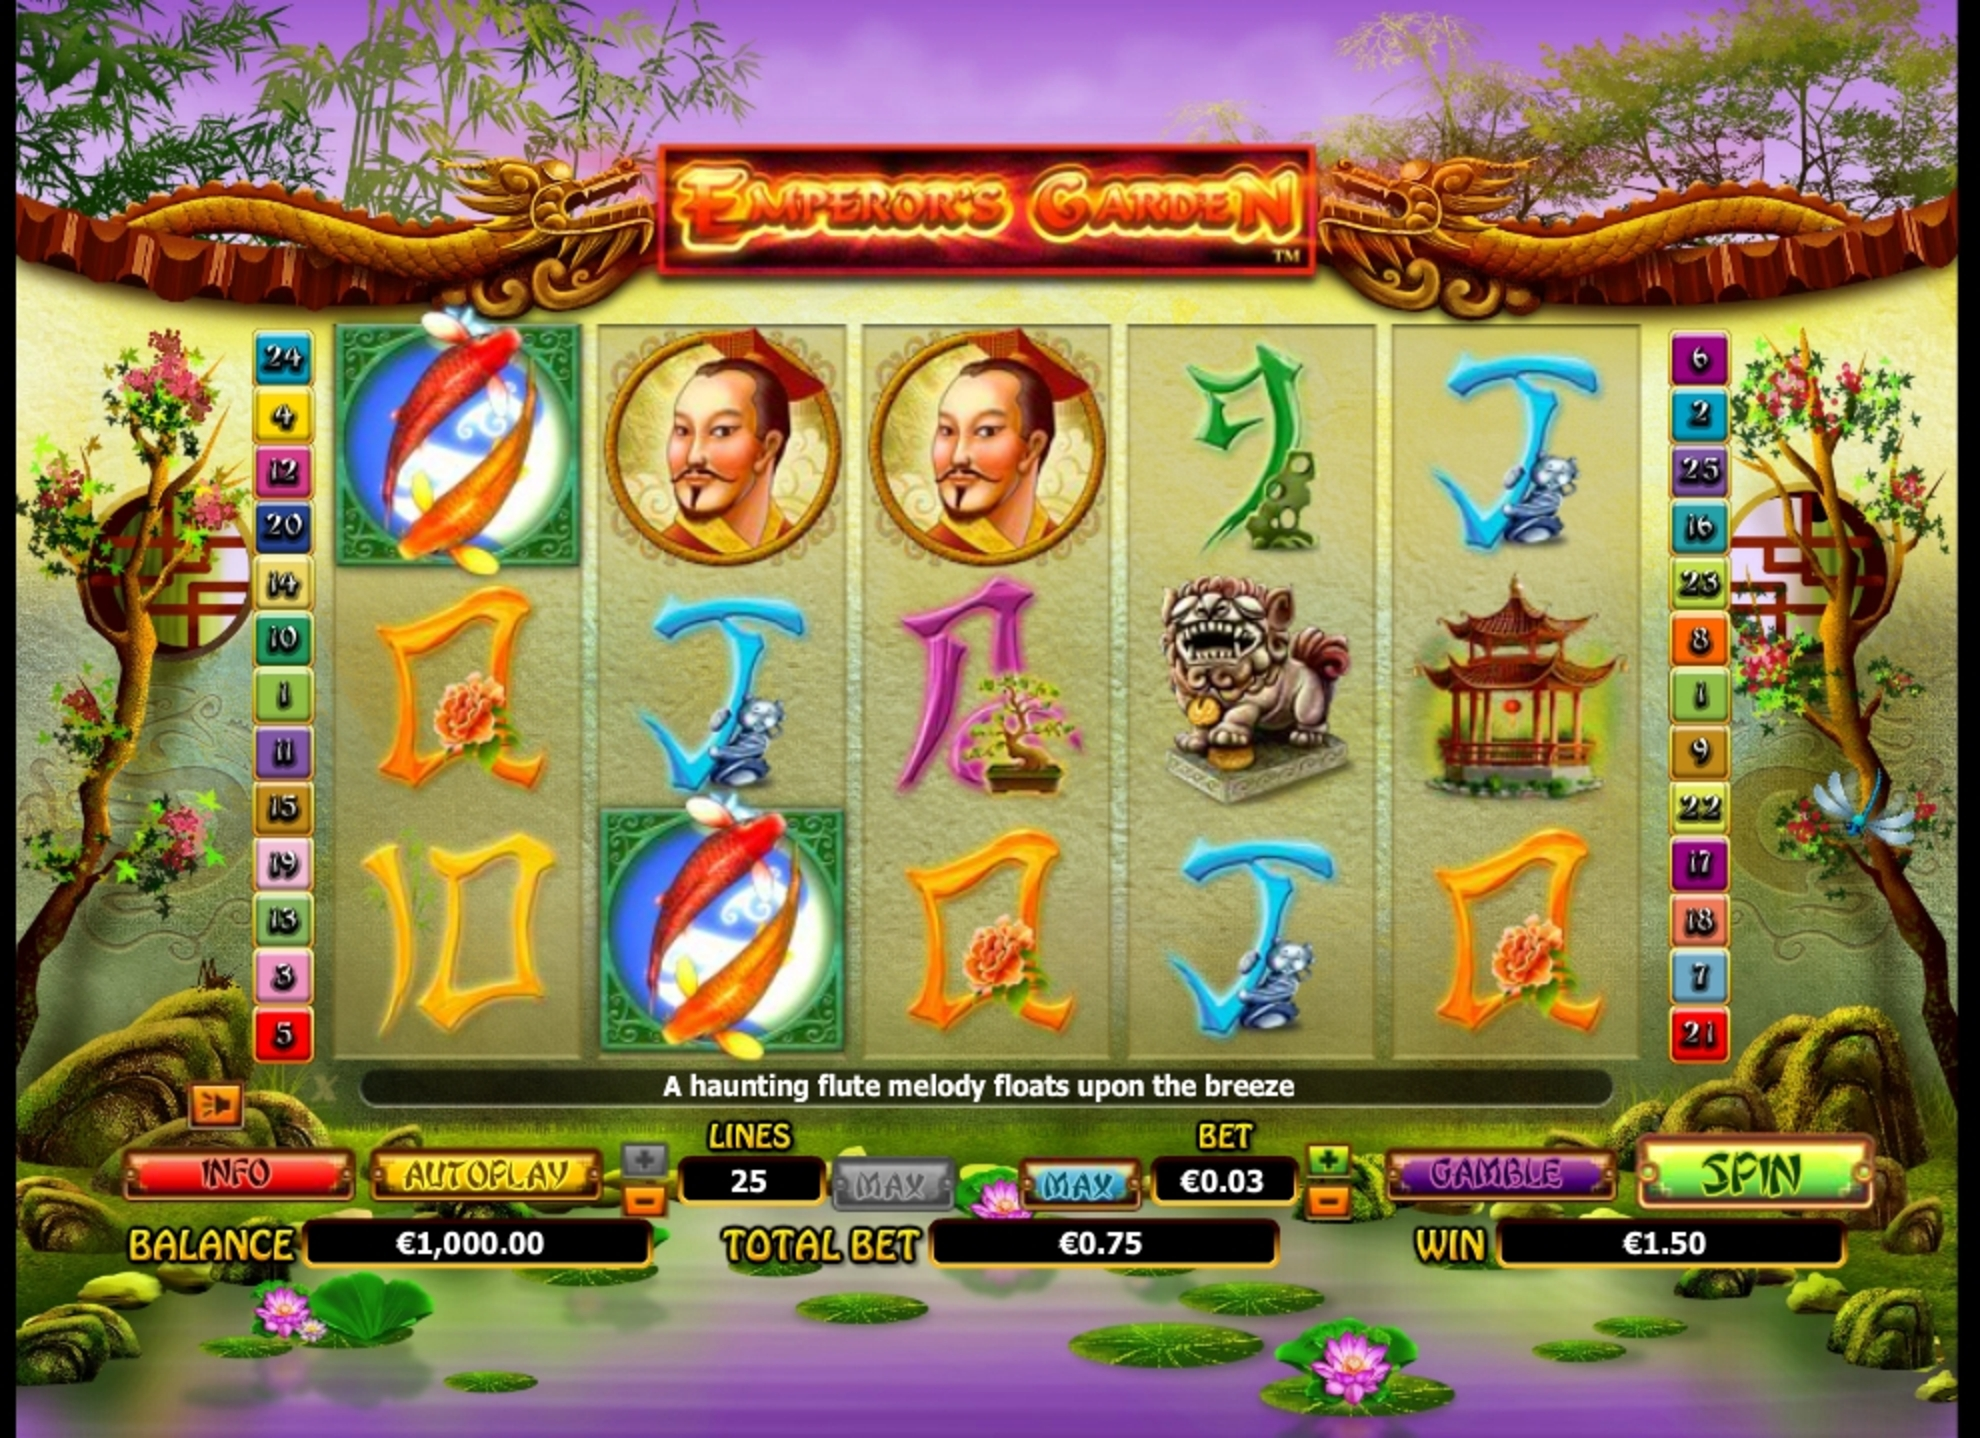 Win Money in Emperor's Garden Free Slot Game by NextGen Gaming